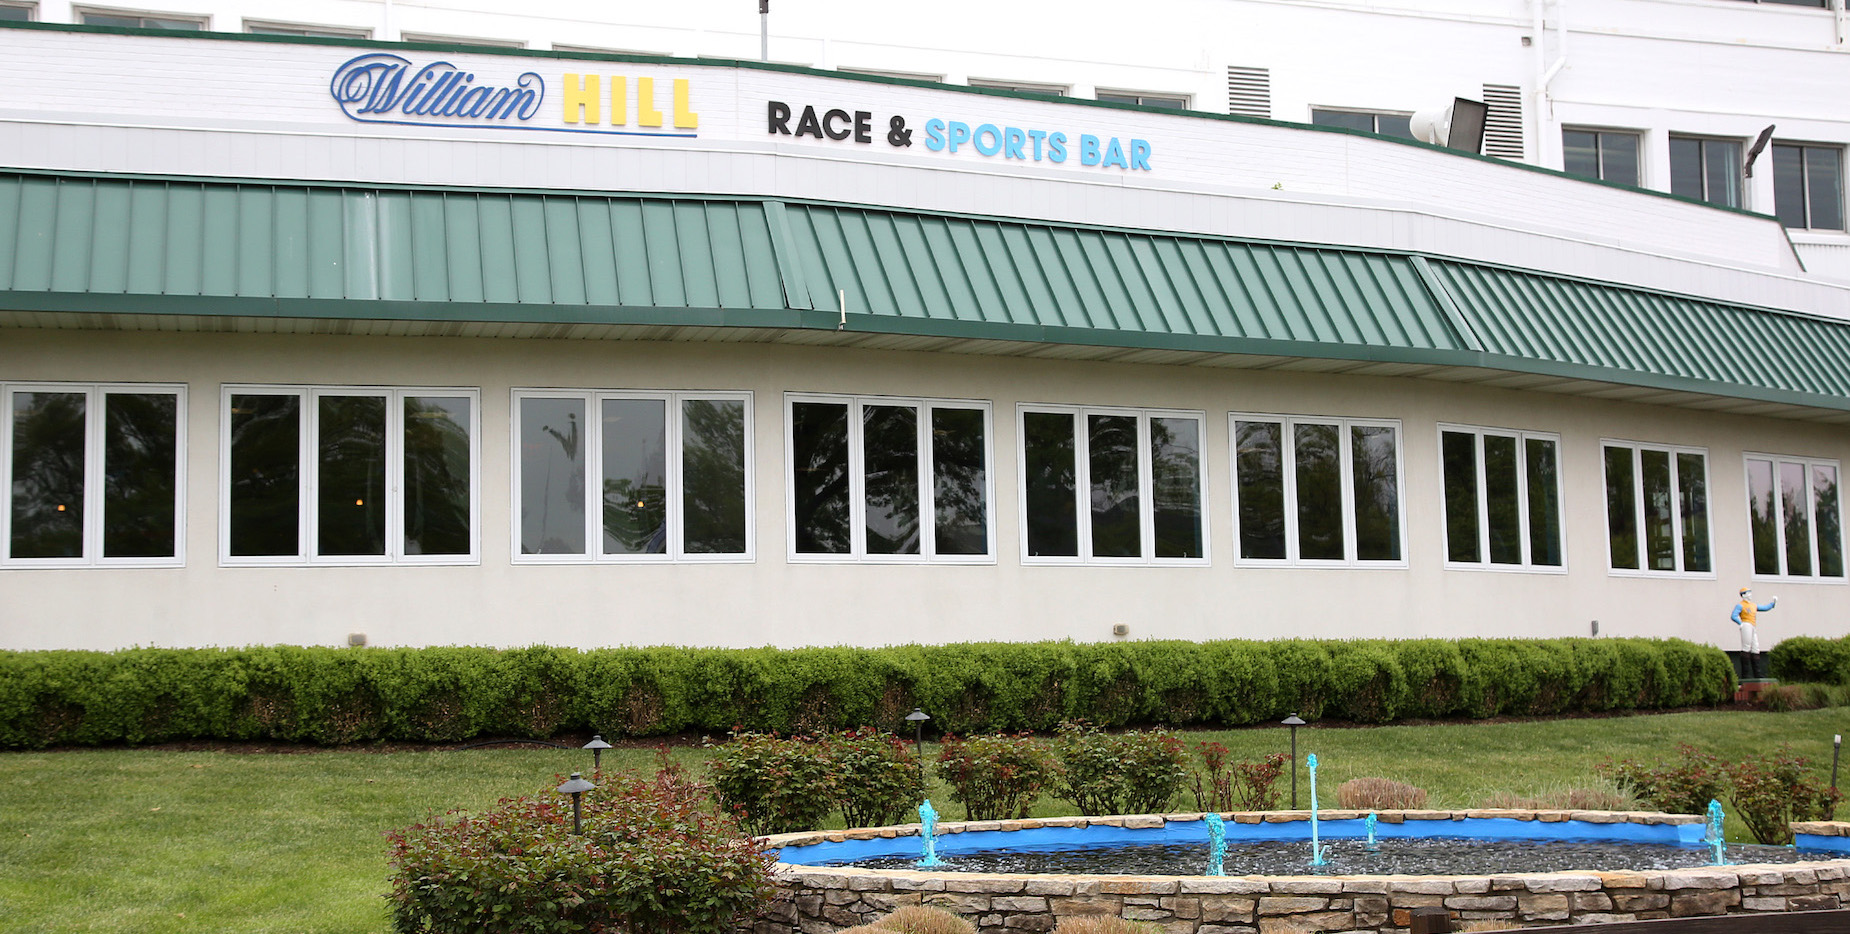 The William Hill facility at Monmouth Park in Oceanport, New Jersey. Photo: Bill Denver/EQUI-PHOTO